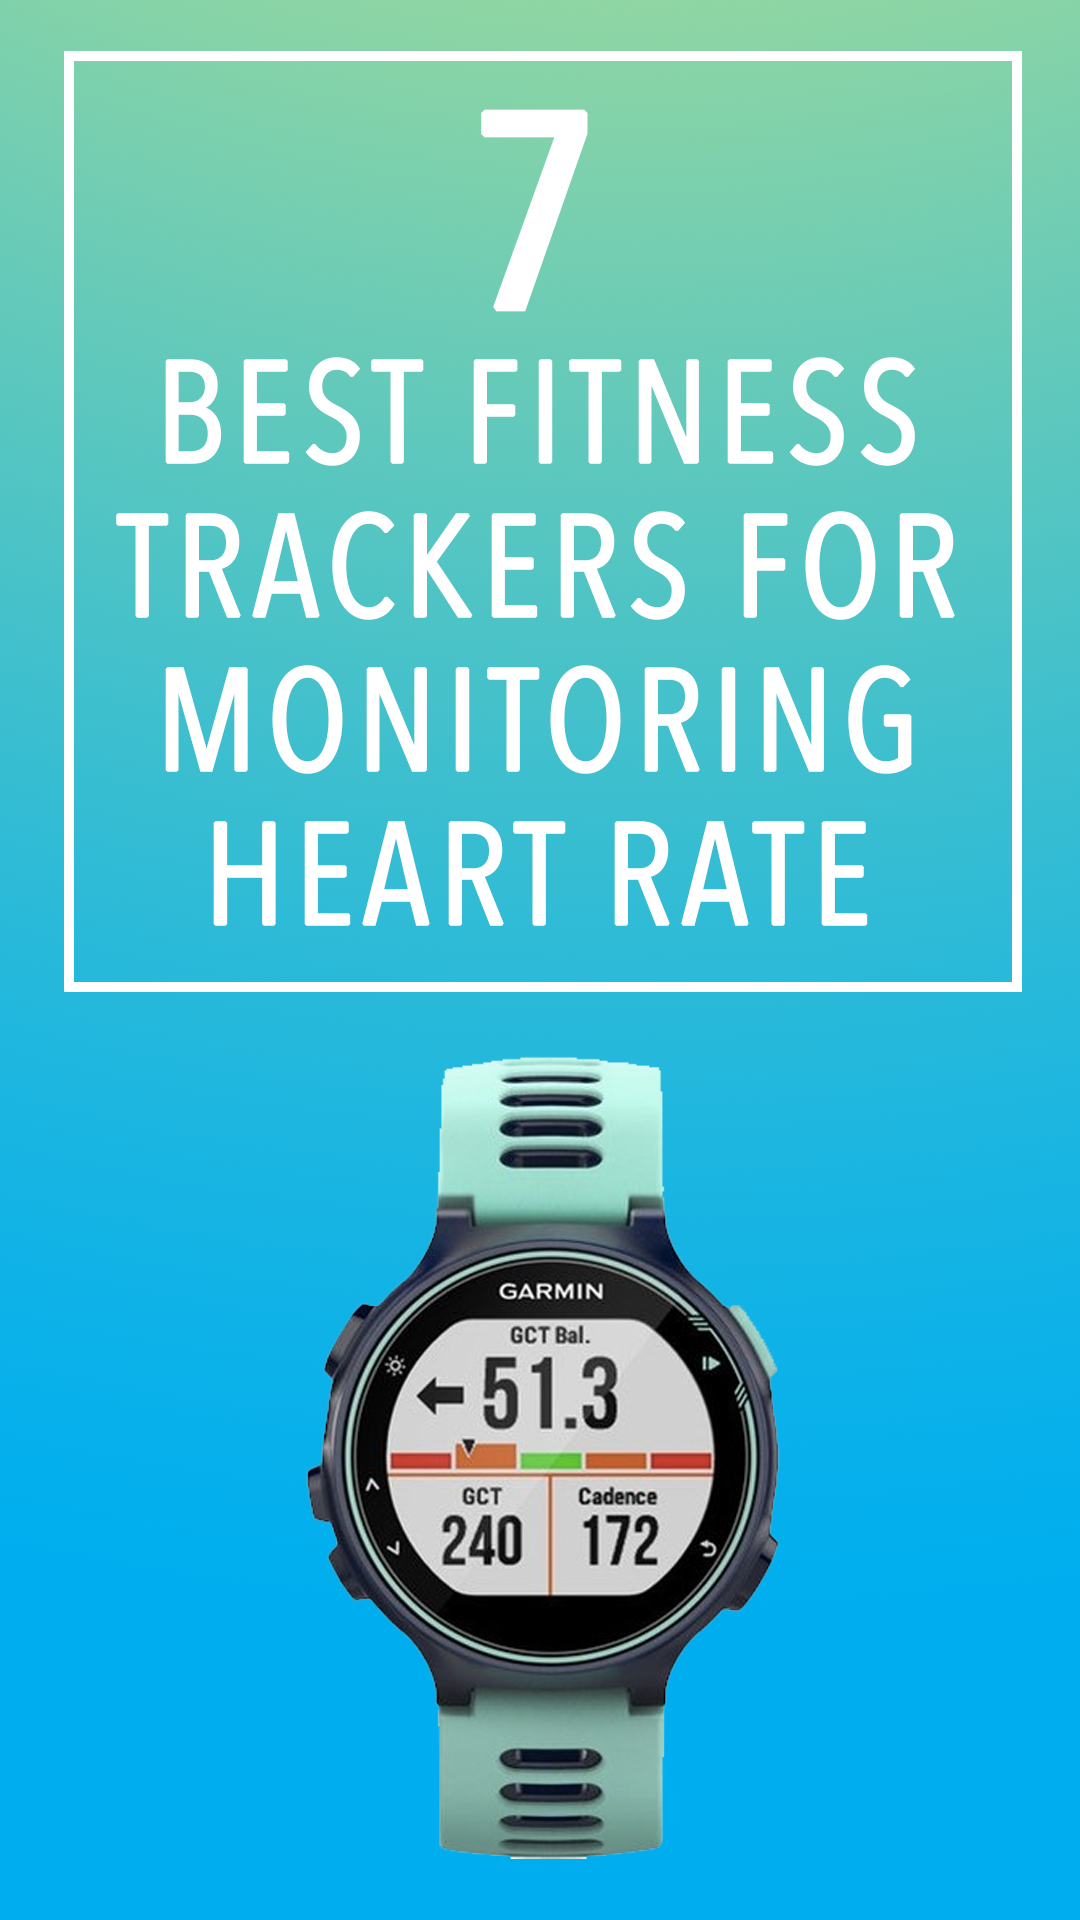 10 of the best fitness trackers for monitoring heart rate